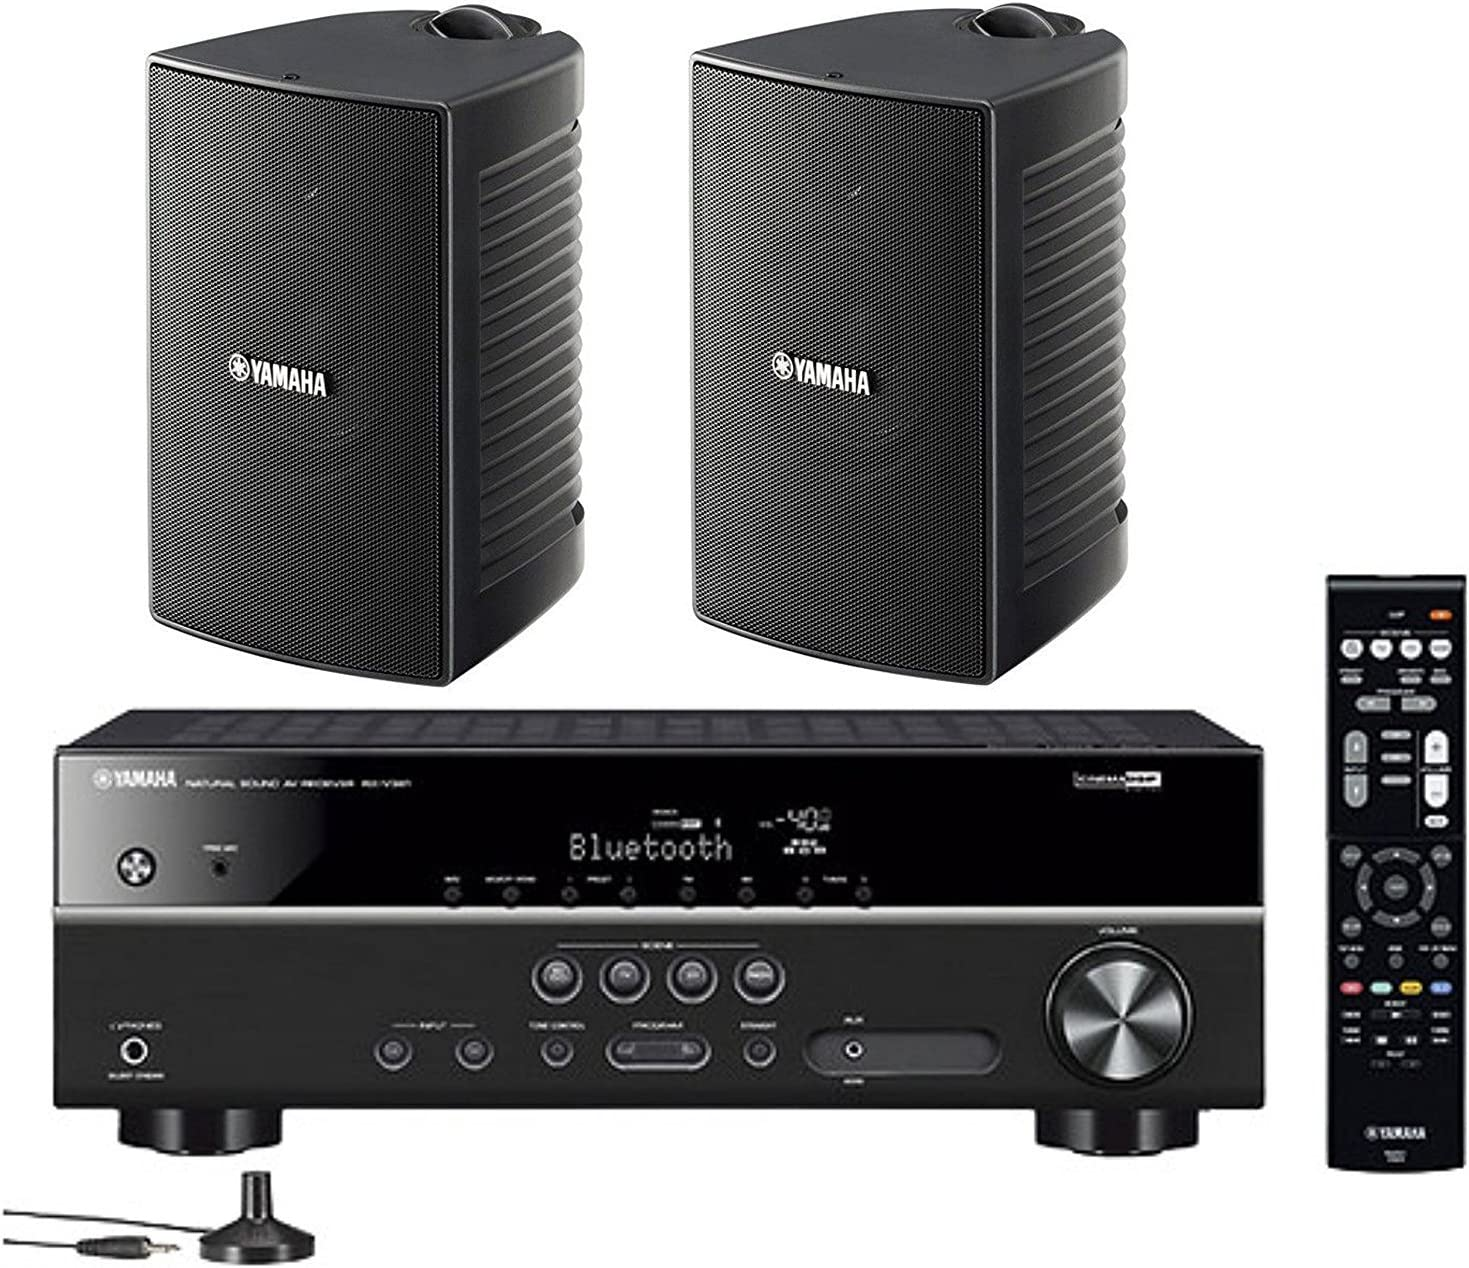 Yamaha 5.1-Channel Wireless Bluetooth 4K A/V Home Theater Receiver + Yamaha Natural Sound High Performance 2-Way Indoor/Outdoor Weatherproof Speakers (Pair)